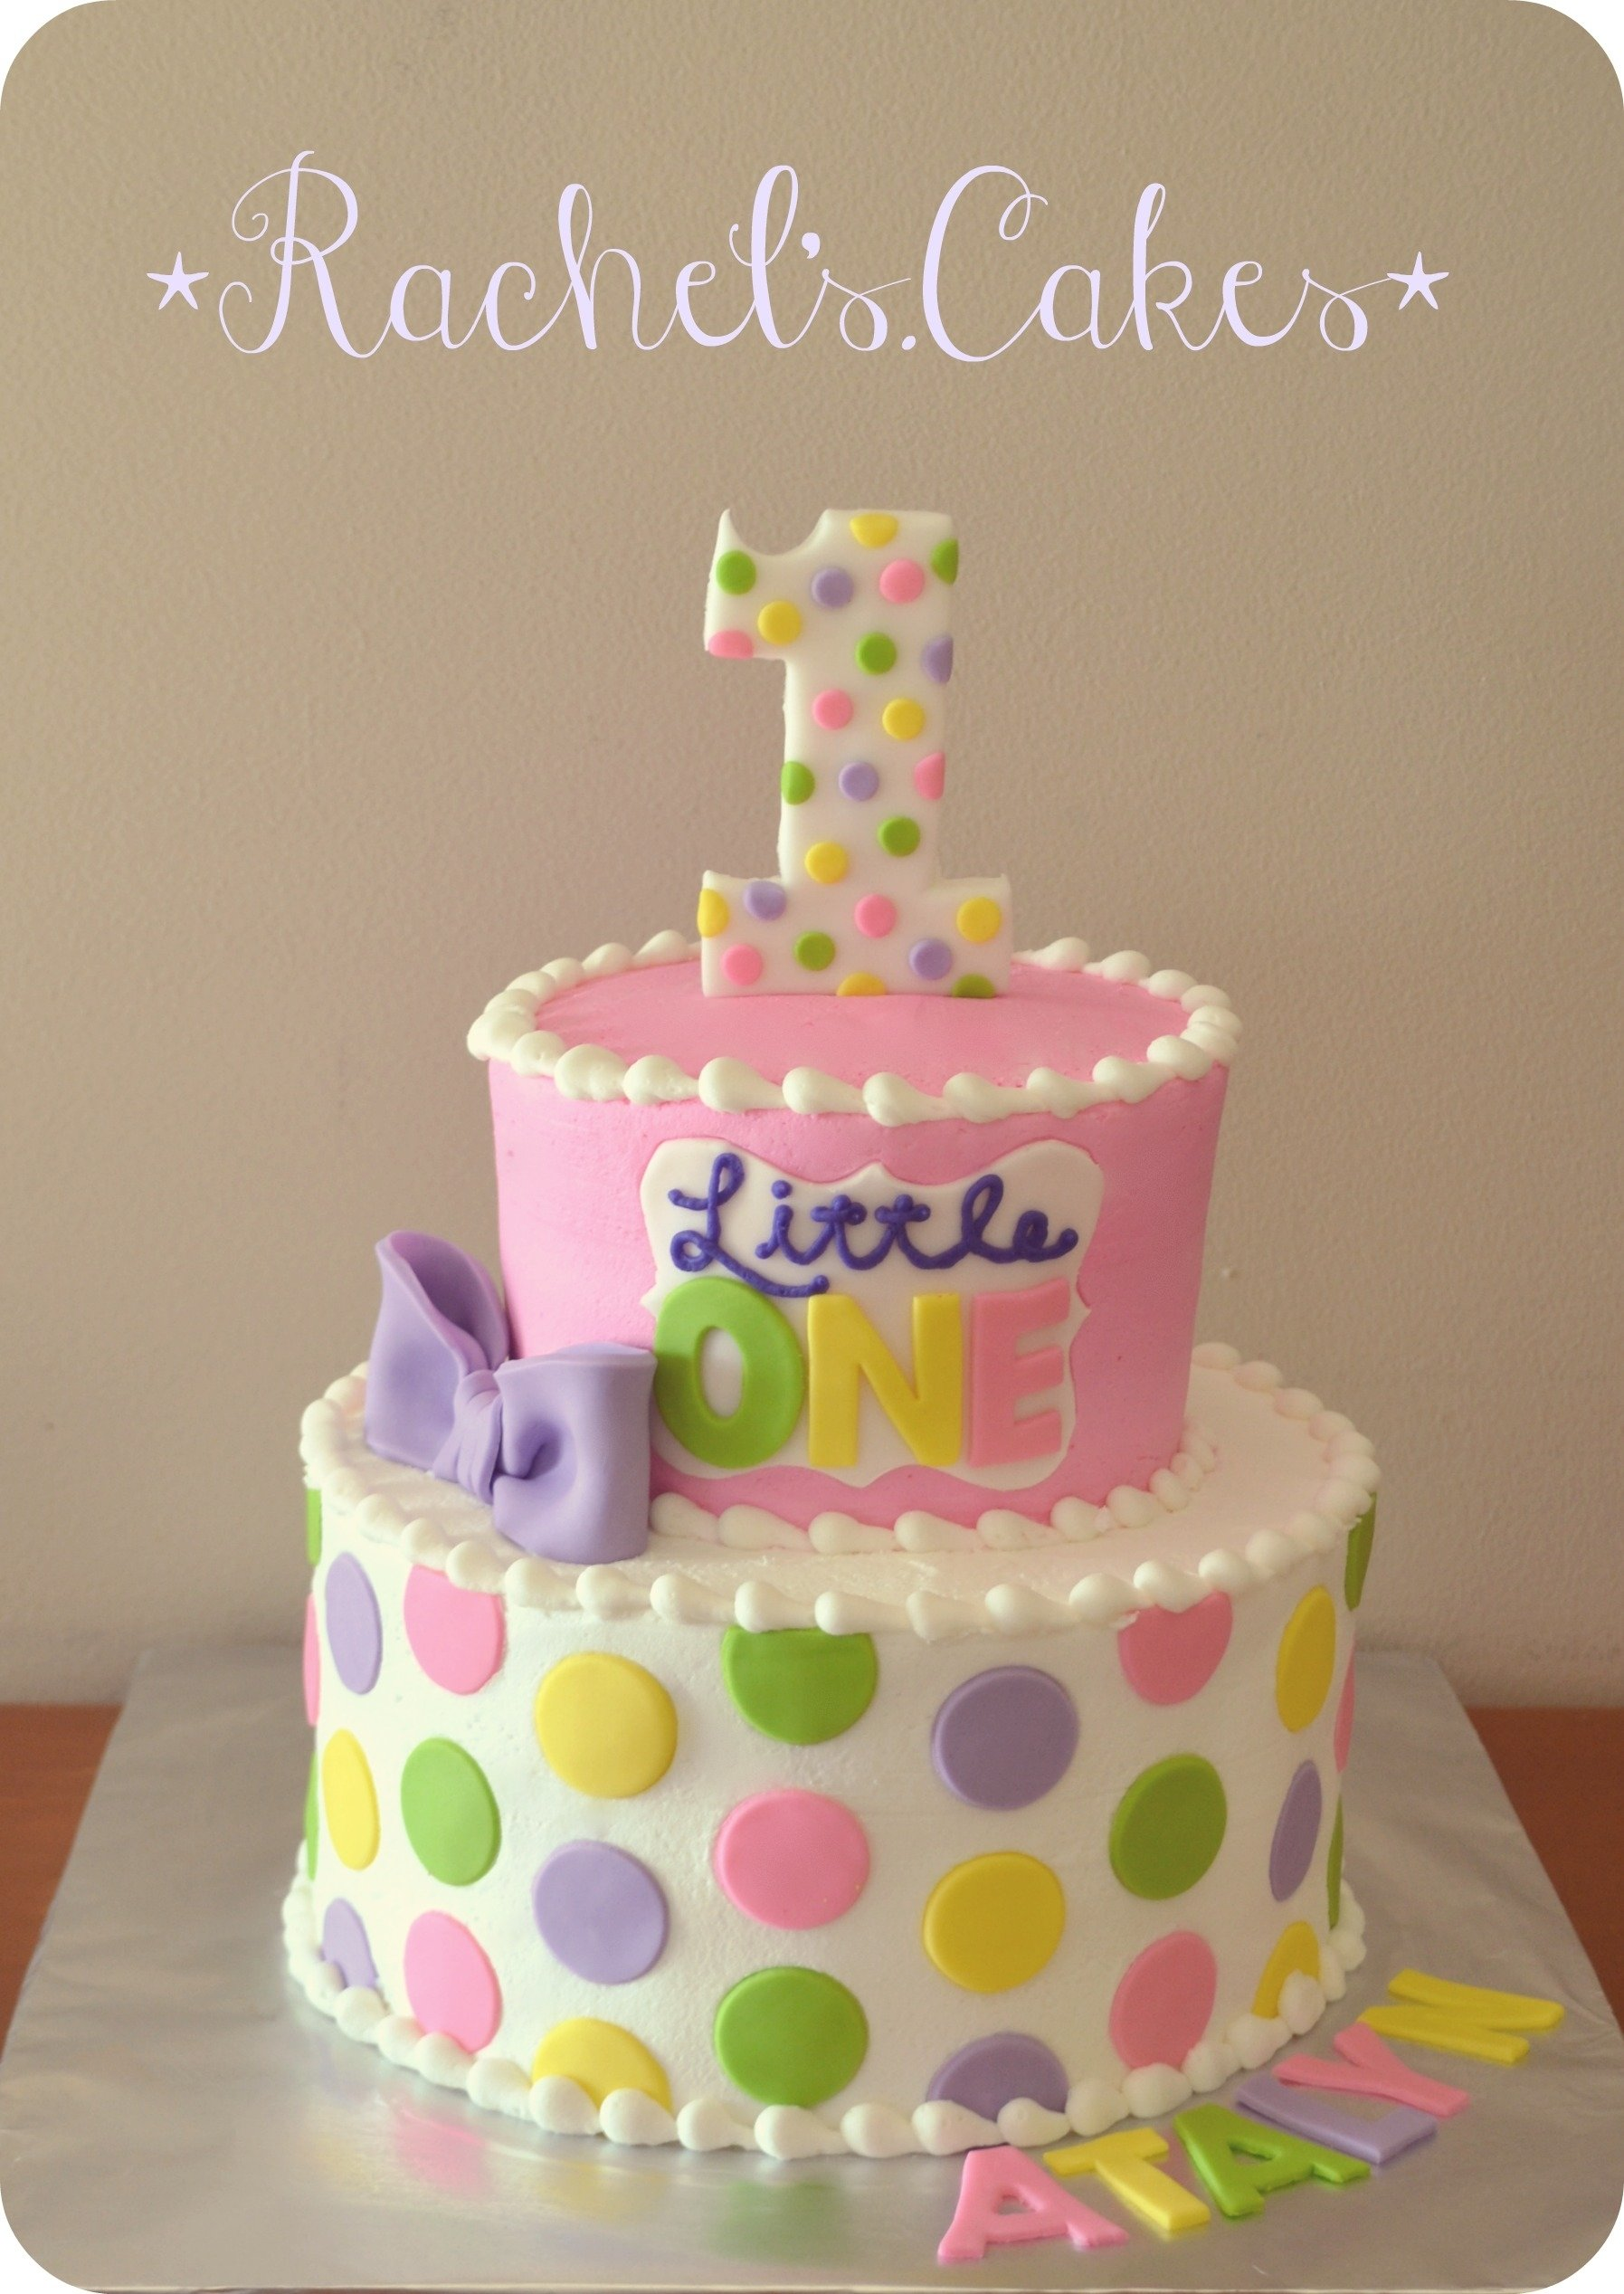 10 Most Por First Birthday Cake Ideas For Girls Cakes Images Mesmerizing 1st